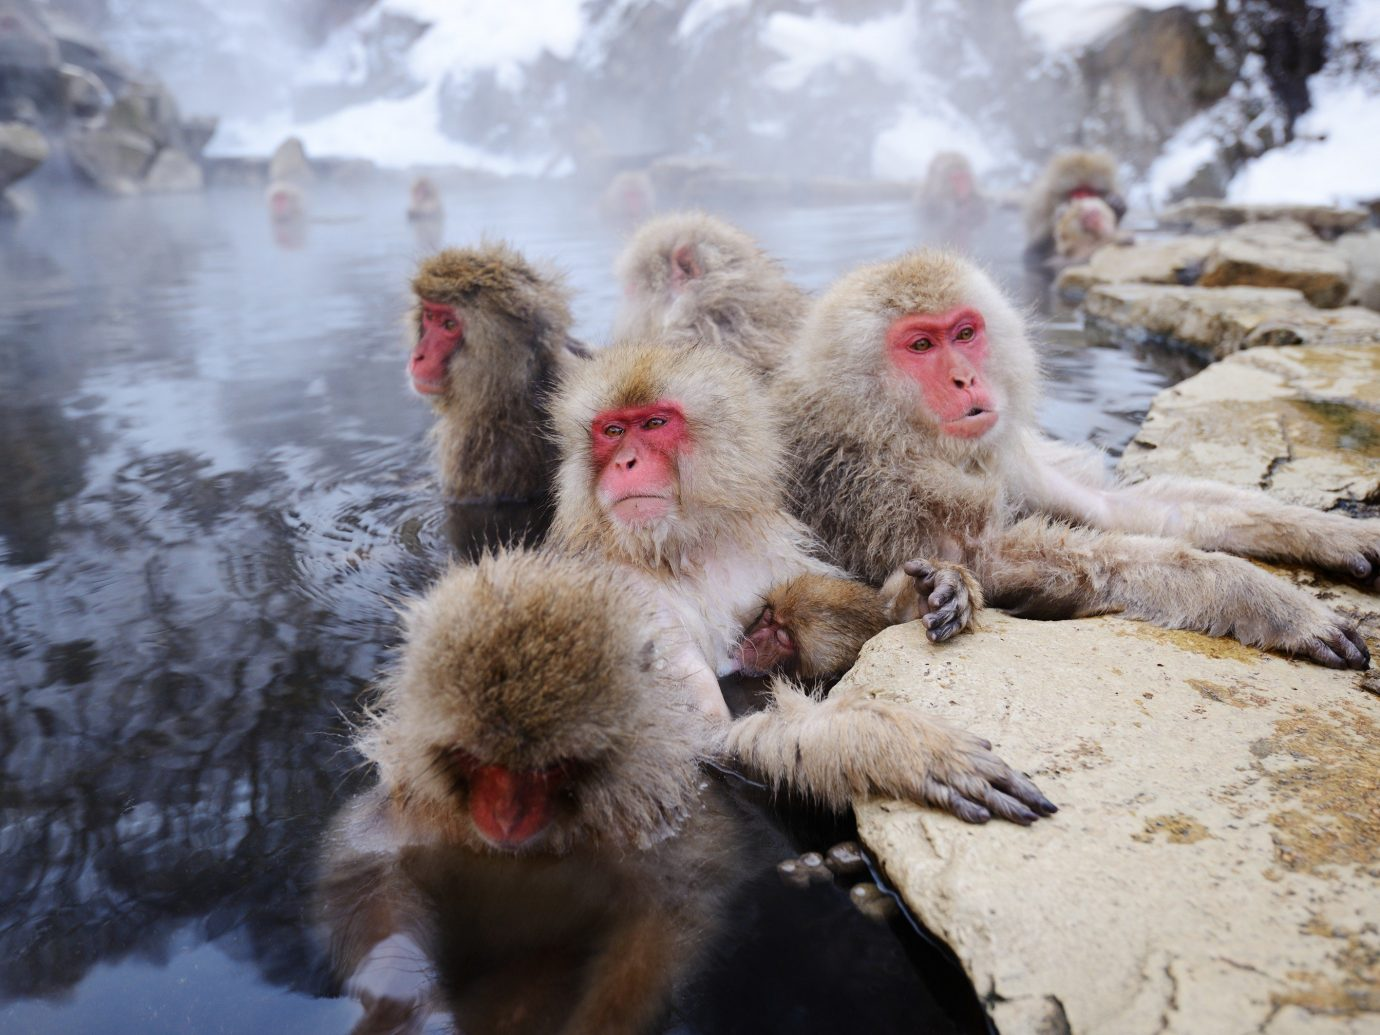 Adventure snow macaque outdoor primate japanese macaque old world monkey mammal monkey pile